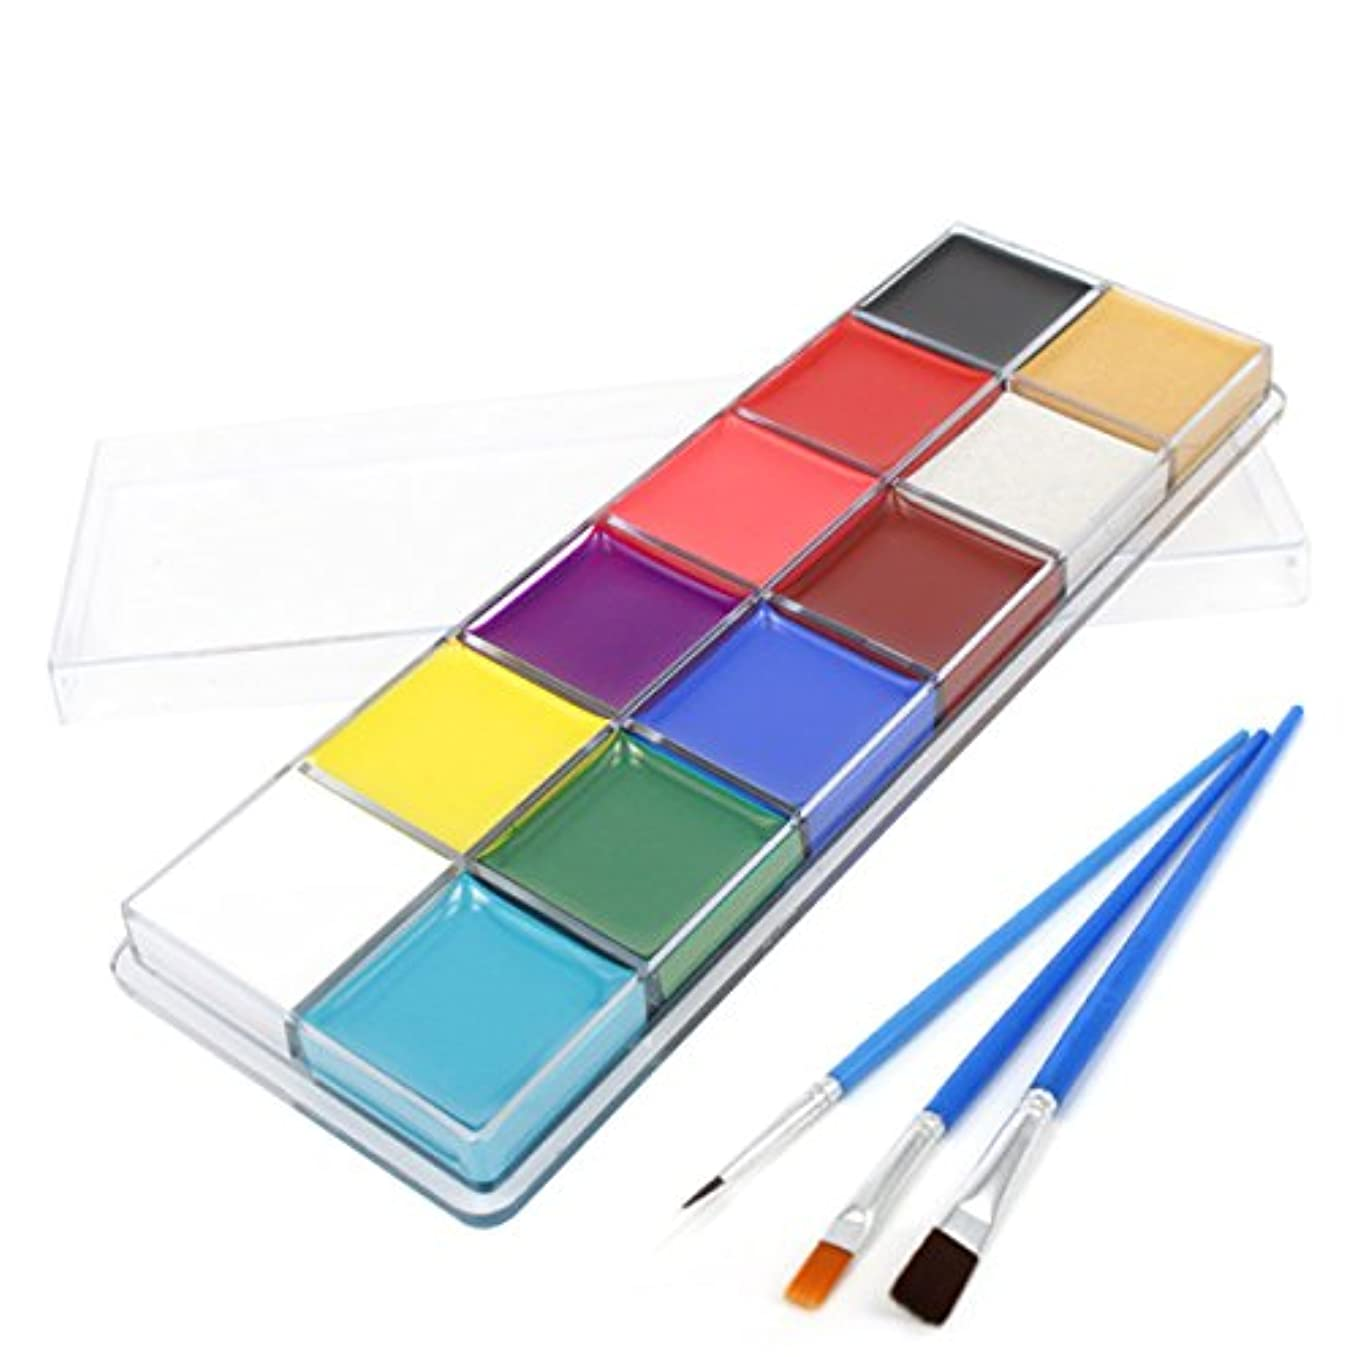 Beaupretty Face Painting Kits Professional 12 Colors Art Party Fancy Make Up Set with brush